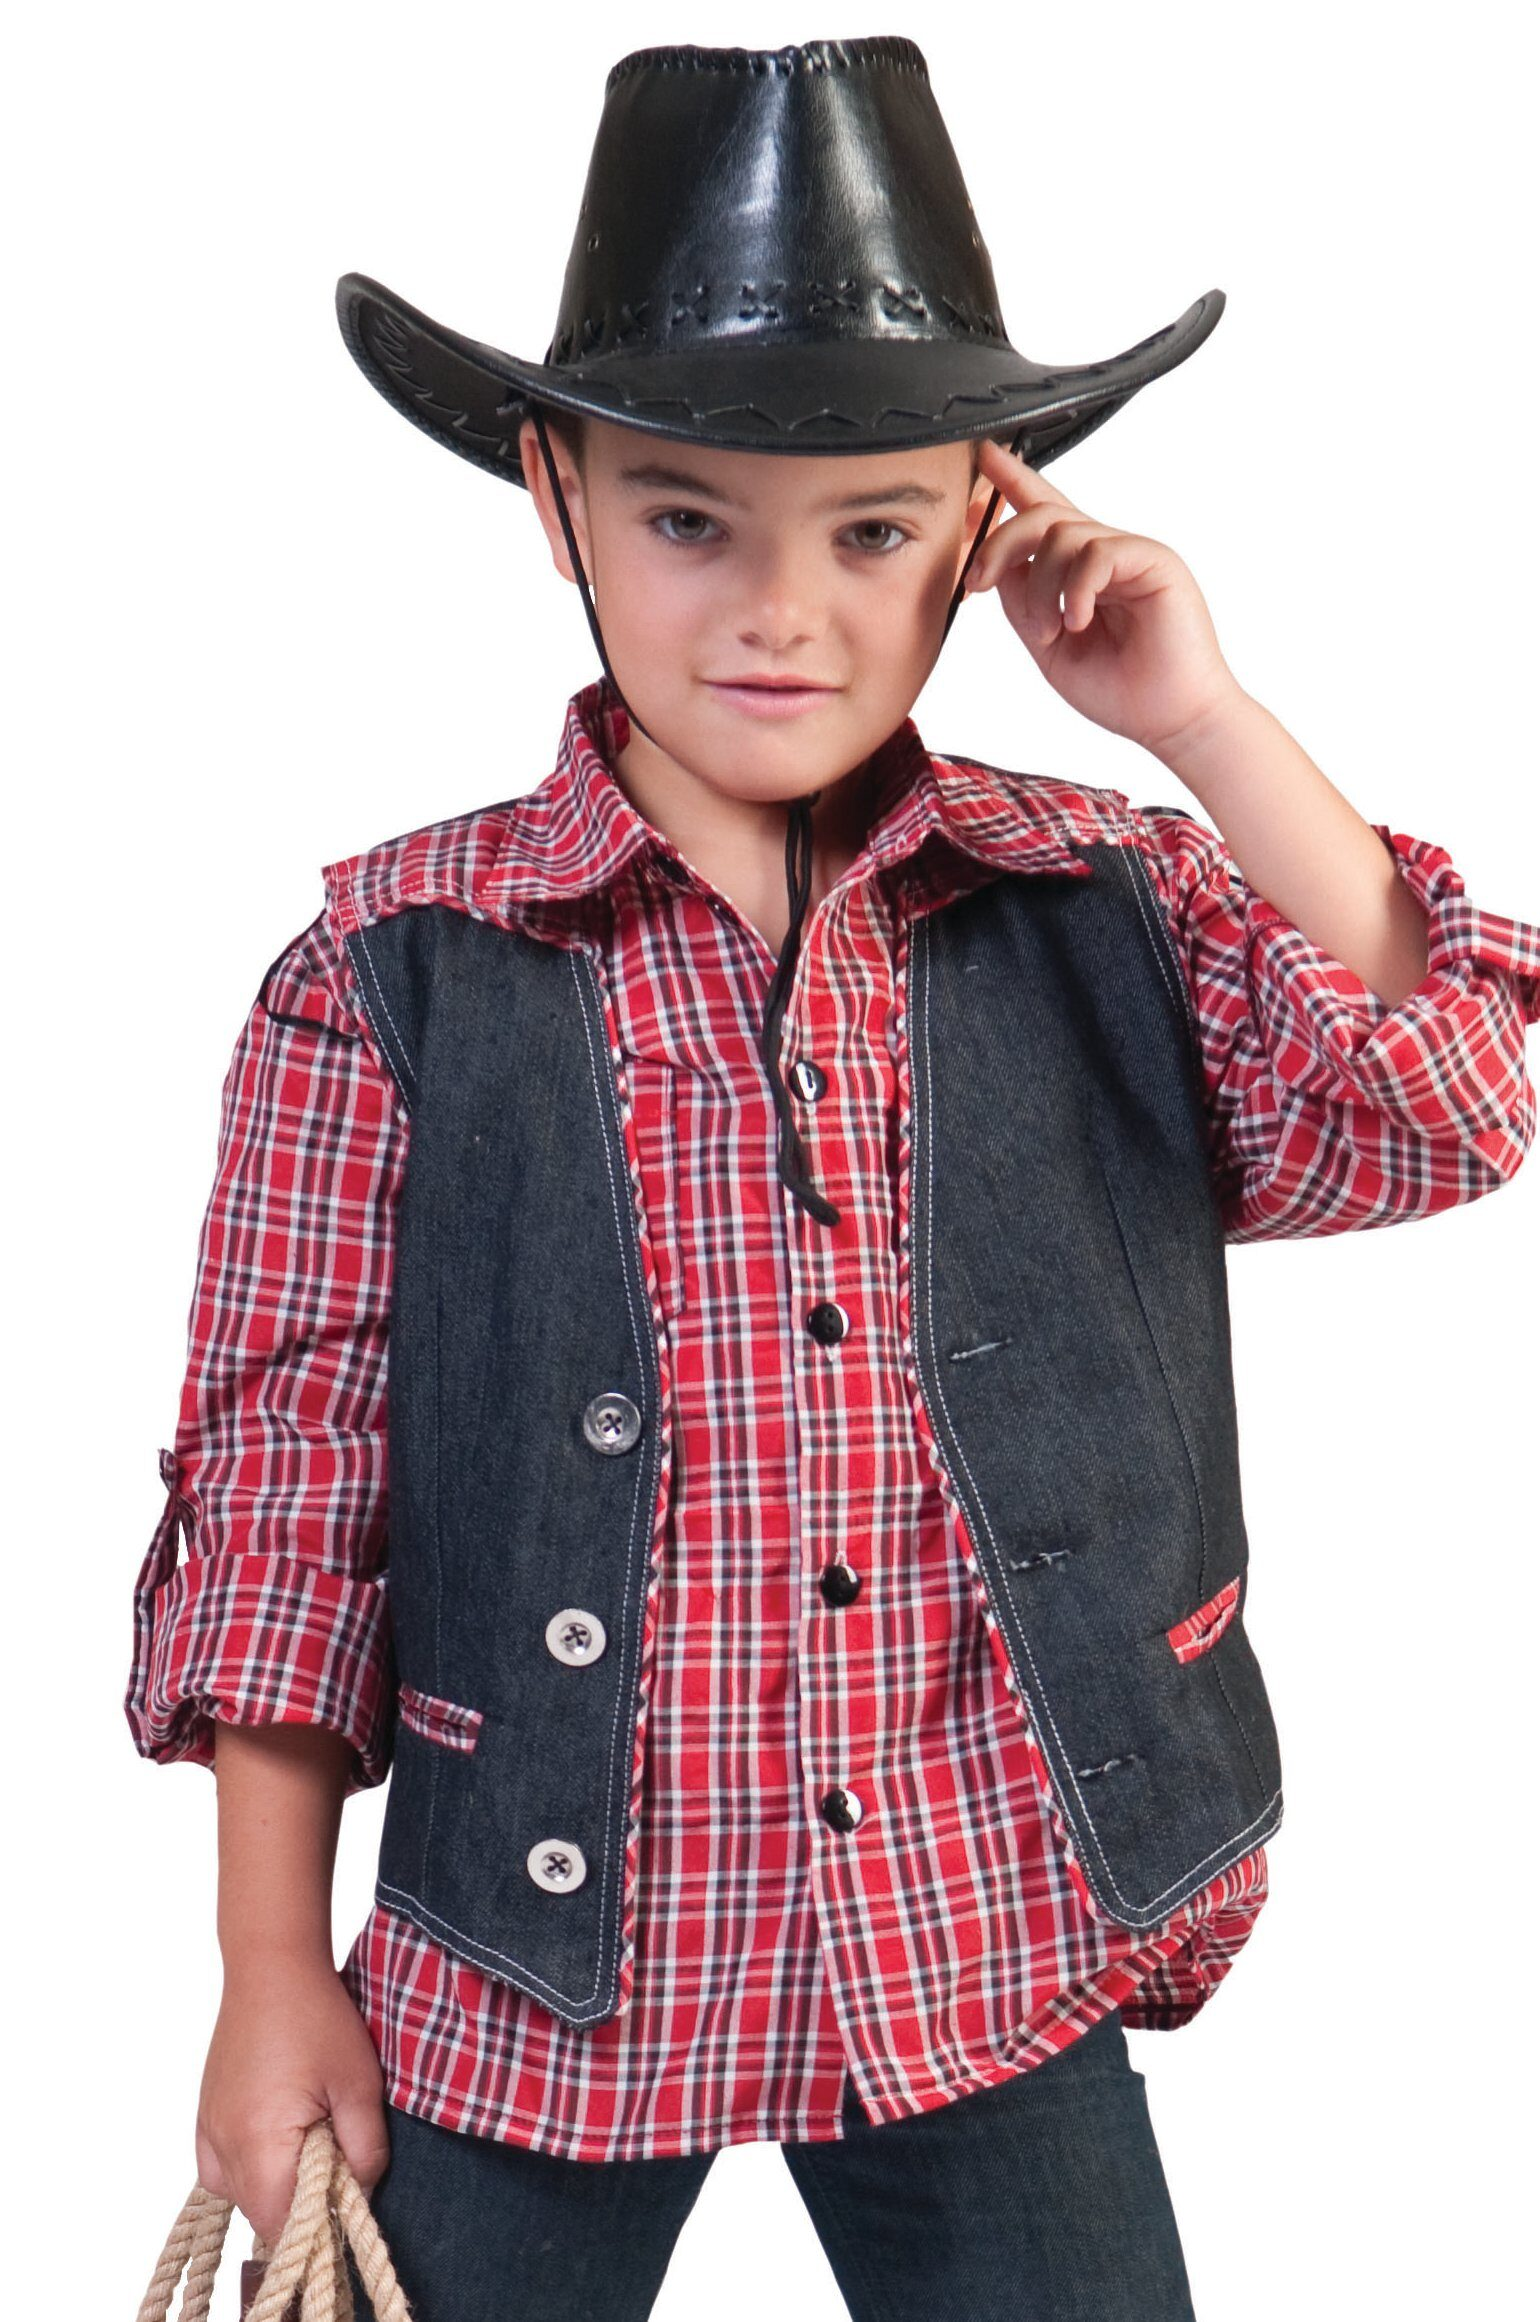 sc 1 st  Mr. Costumes & Boys Cowboy Shirt Kids Costume - Mr. Costumes